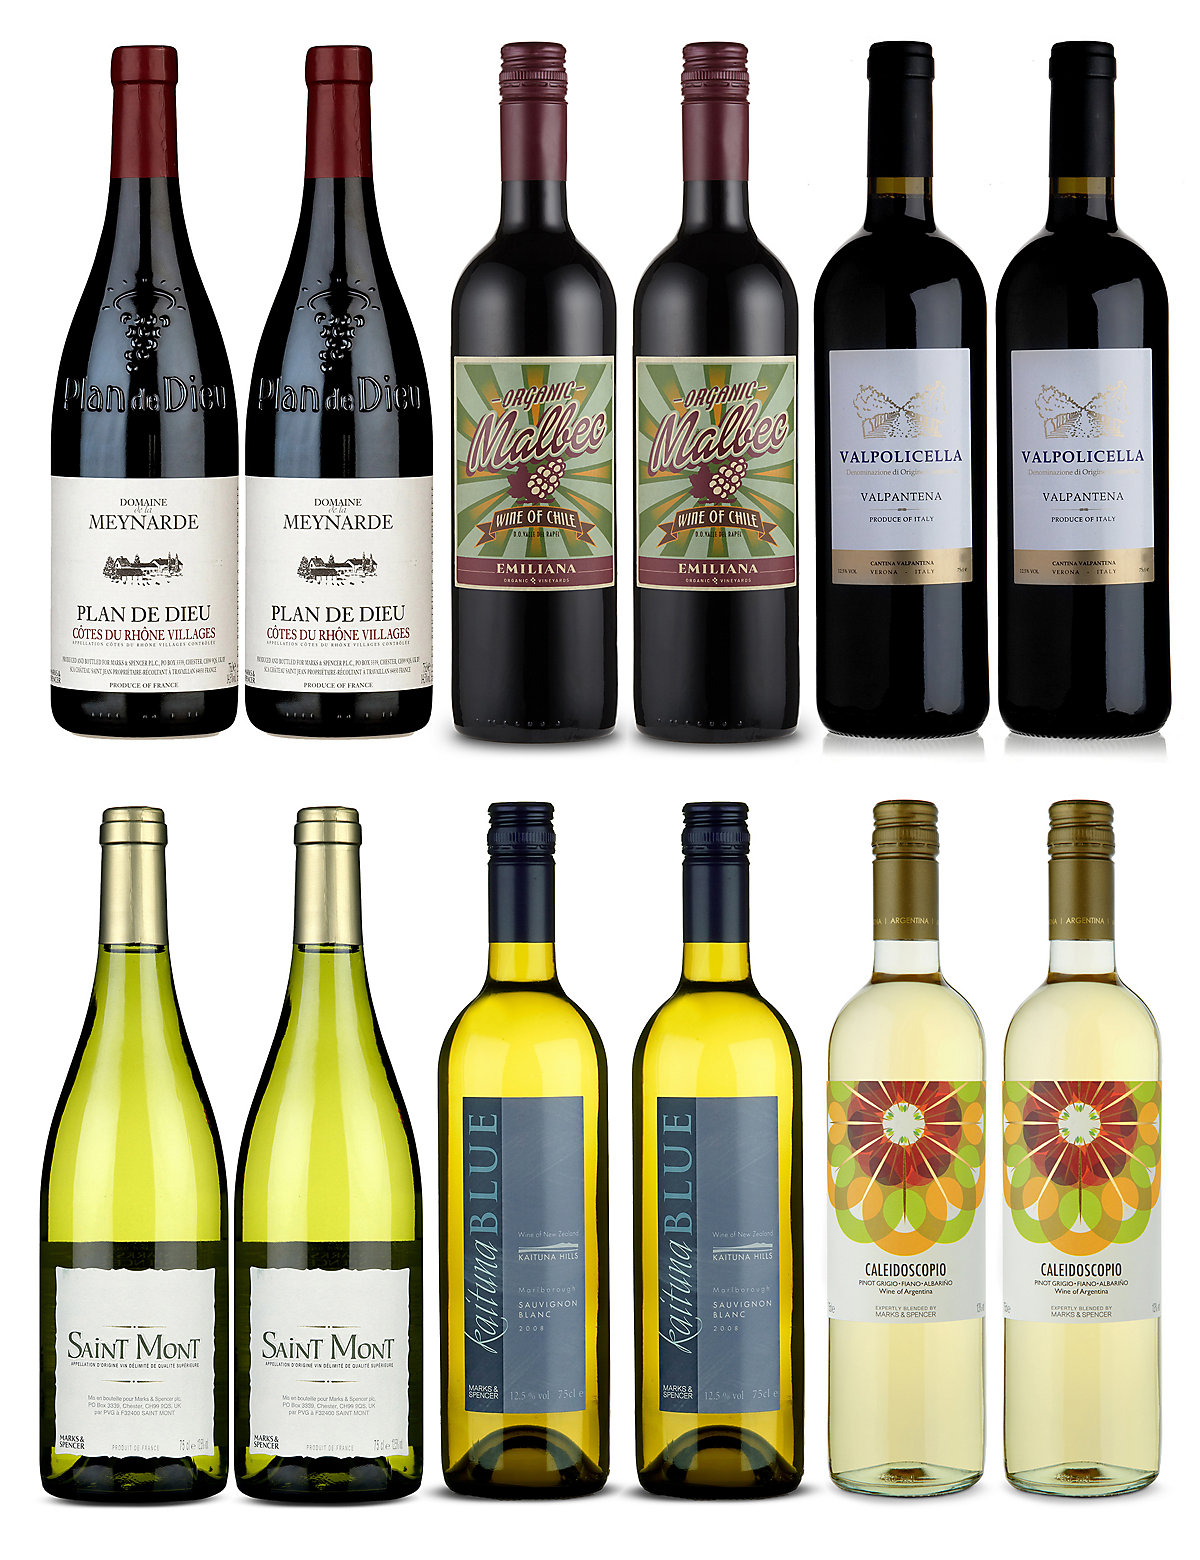 Marks & Spencer. Personalia: Search Go. FREE DELIVERY TO STORE IN 2 - 3* DAYS FIND OUT MORE > Wine Glasses; Food in store Store Locator; CHRISTMAS FOOD TO ORDER Christmas Food to Order 2 for €18 selected wines. Choose from our delicious range of Red and white wines.